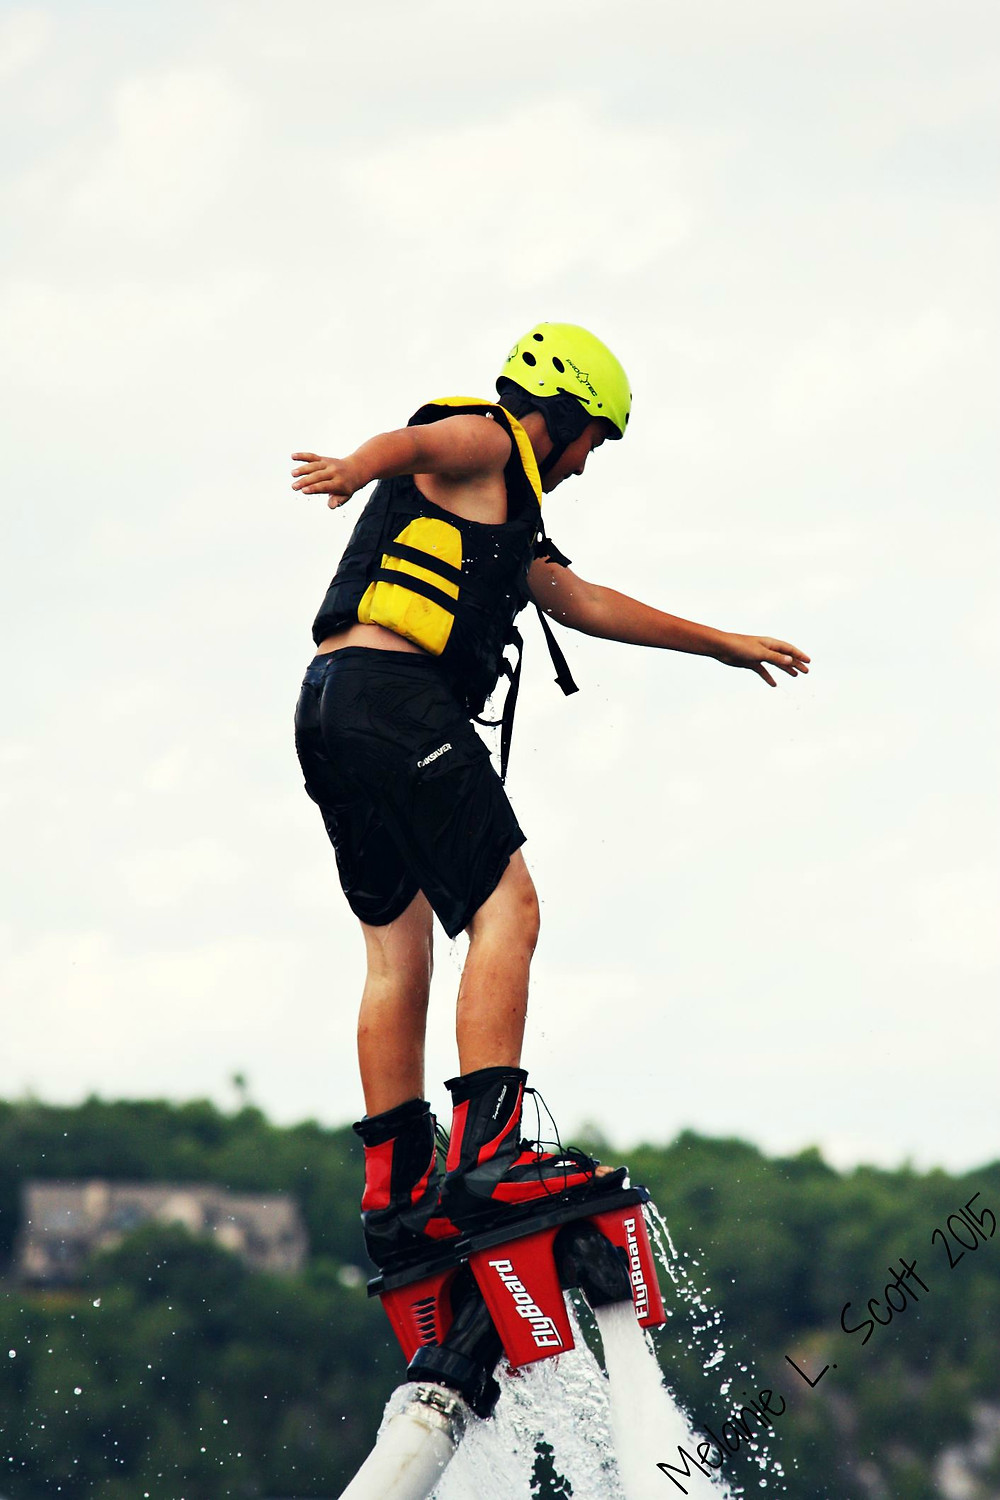 Ben on the Flyboard for the first time.  Photo courtesy of Melanie Scott.